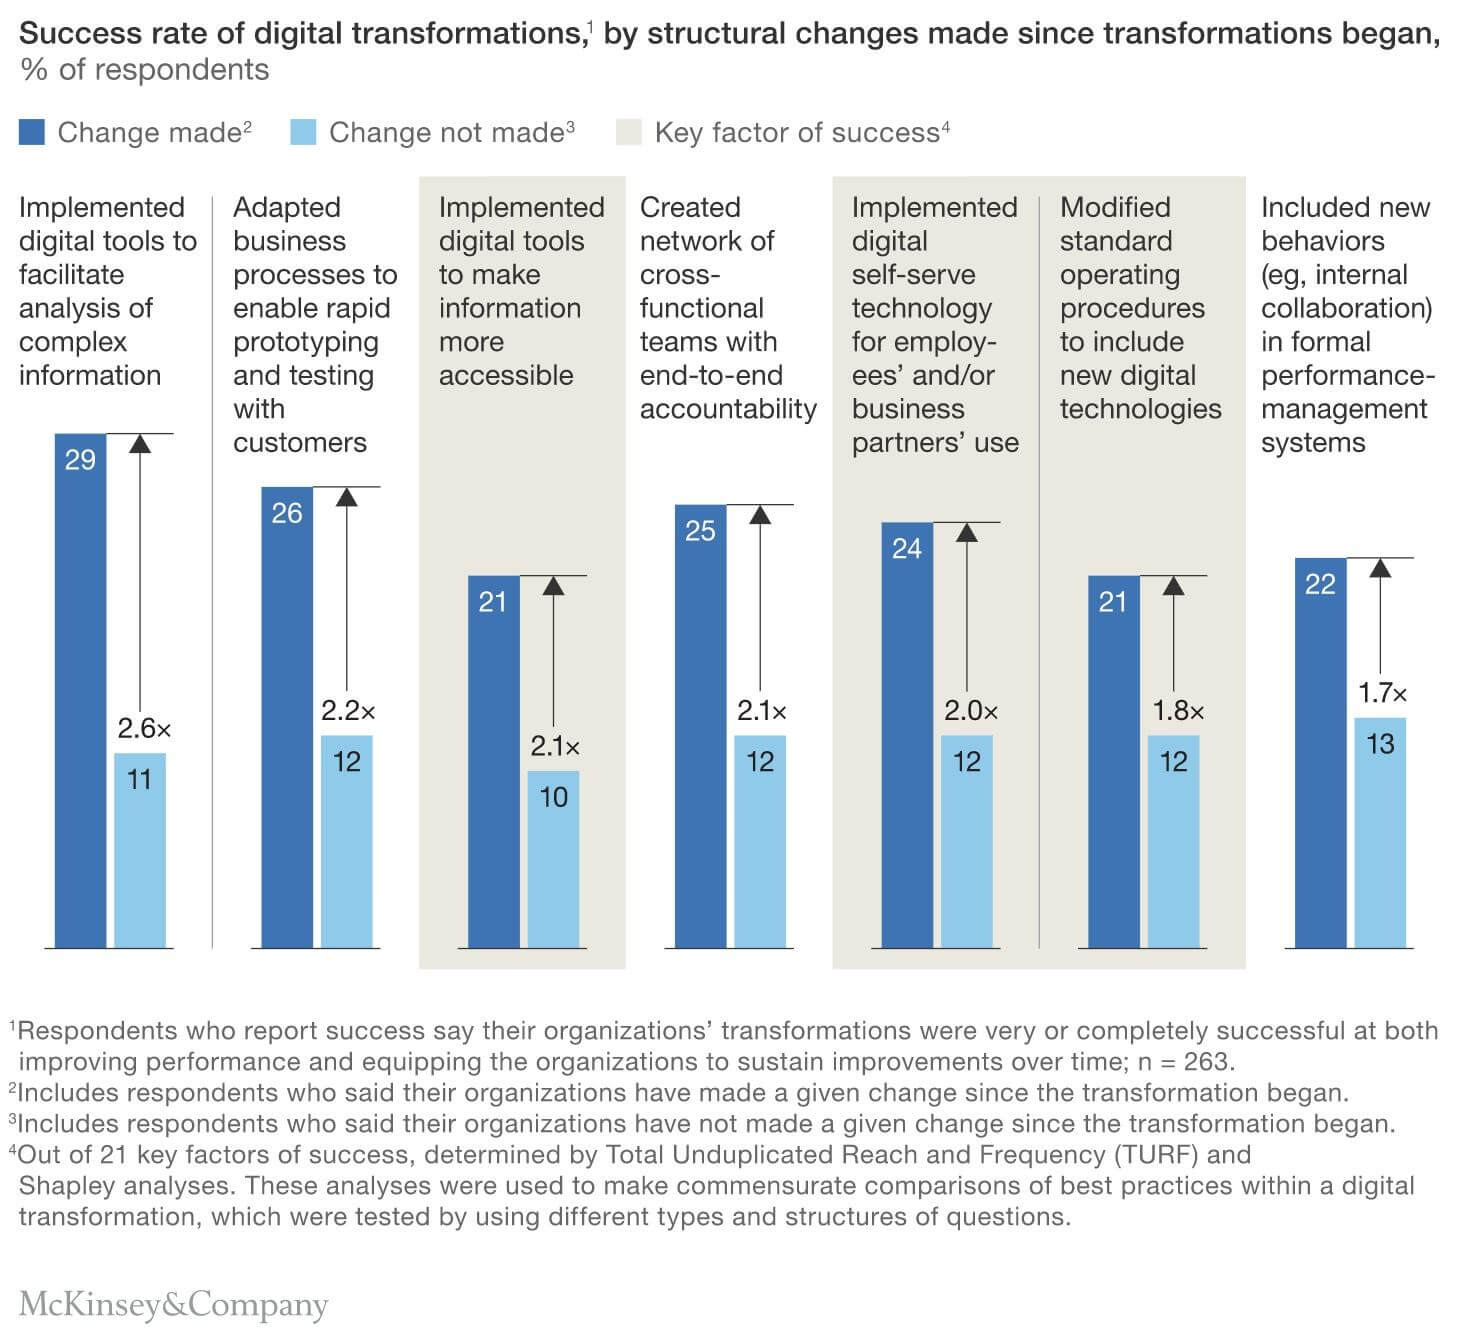 Top strategies and practices found in digital transformations. (McKinsey & Co.)